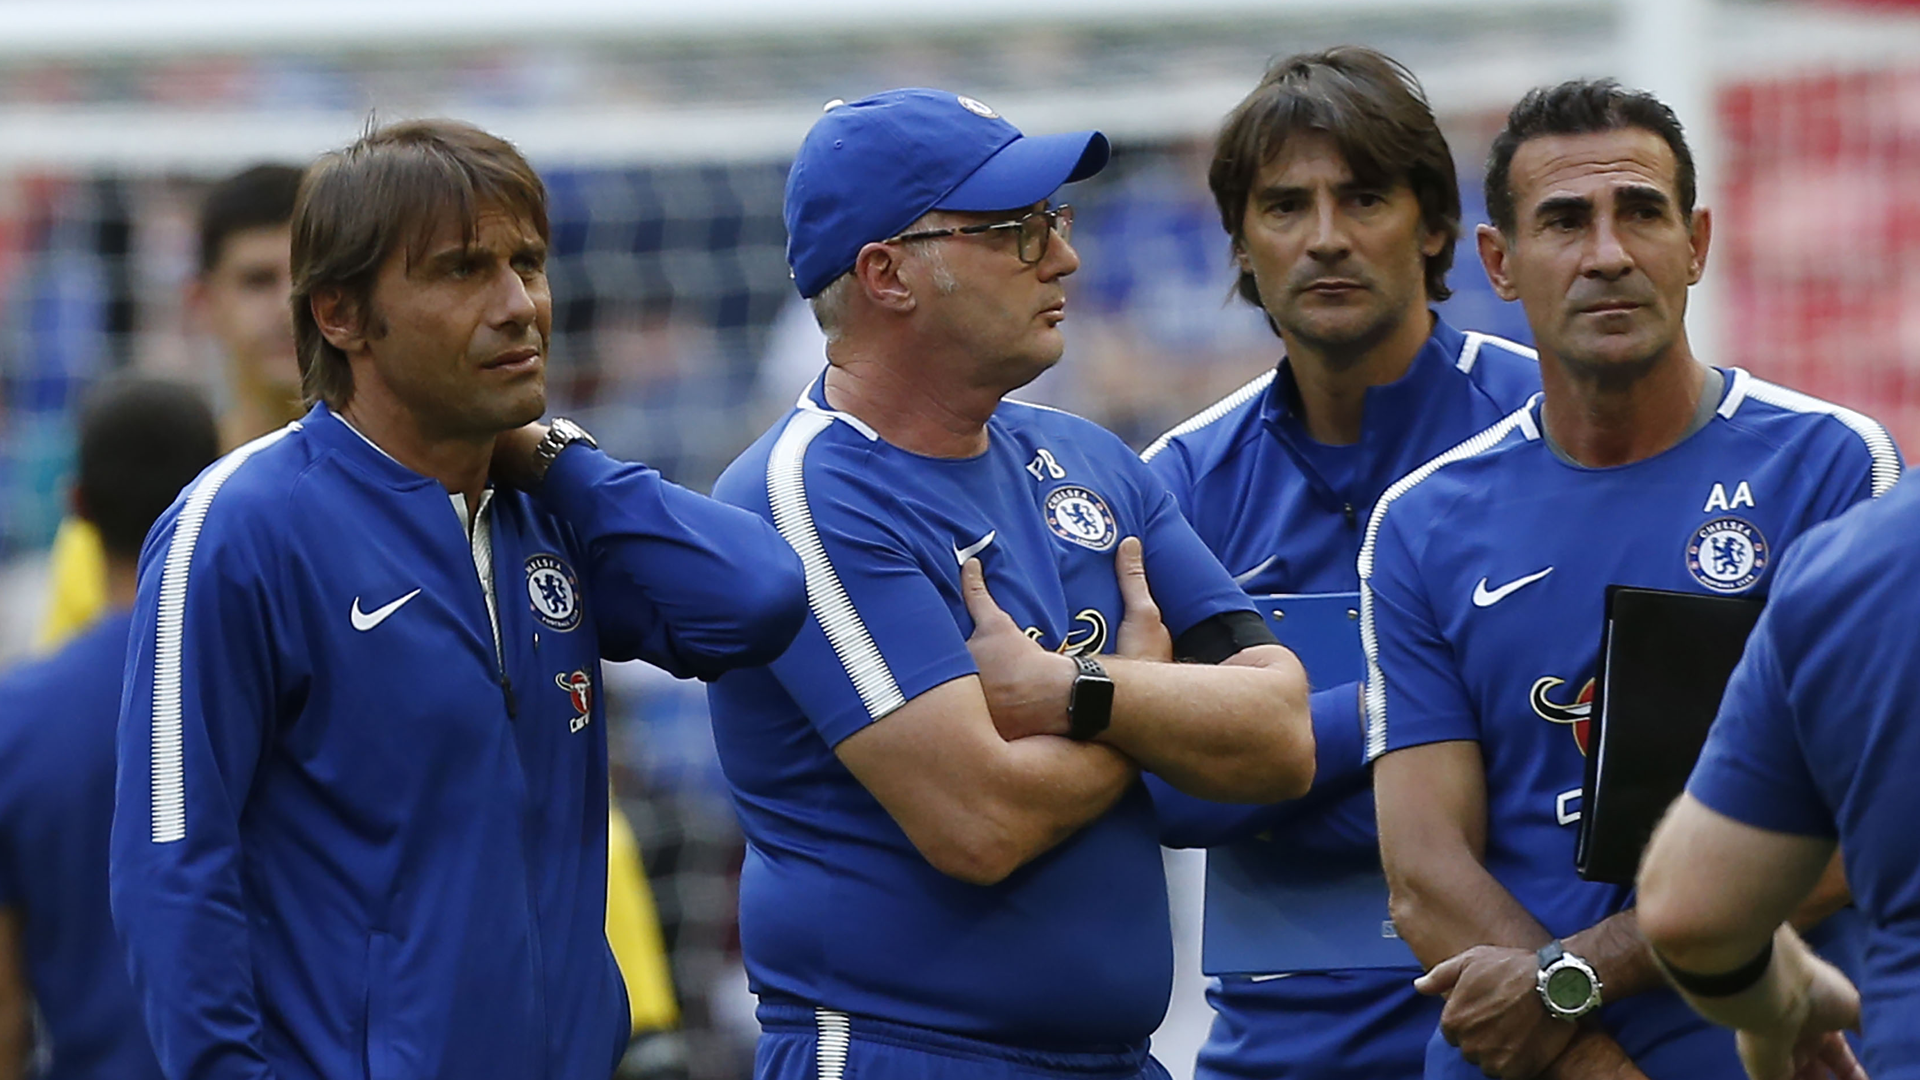 Antonio Conte: 'Chelsea doing their best with transfers'